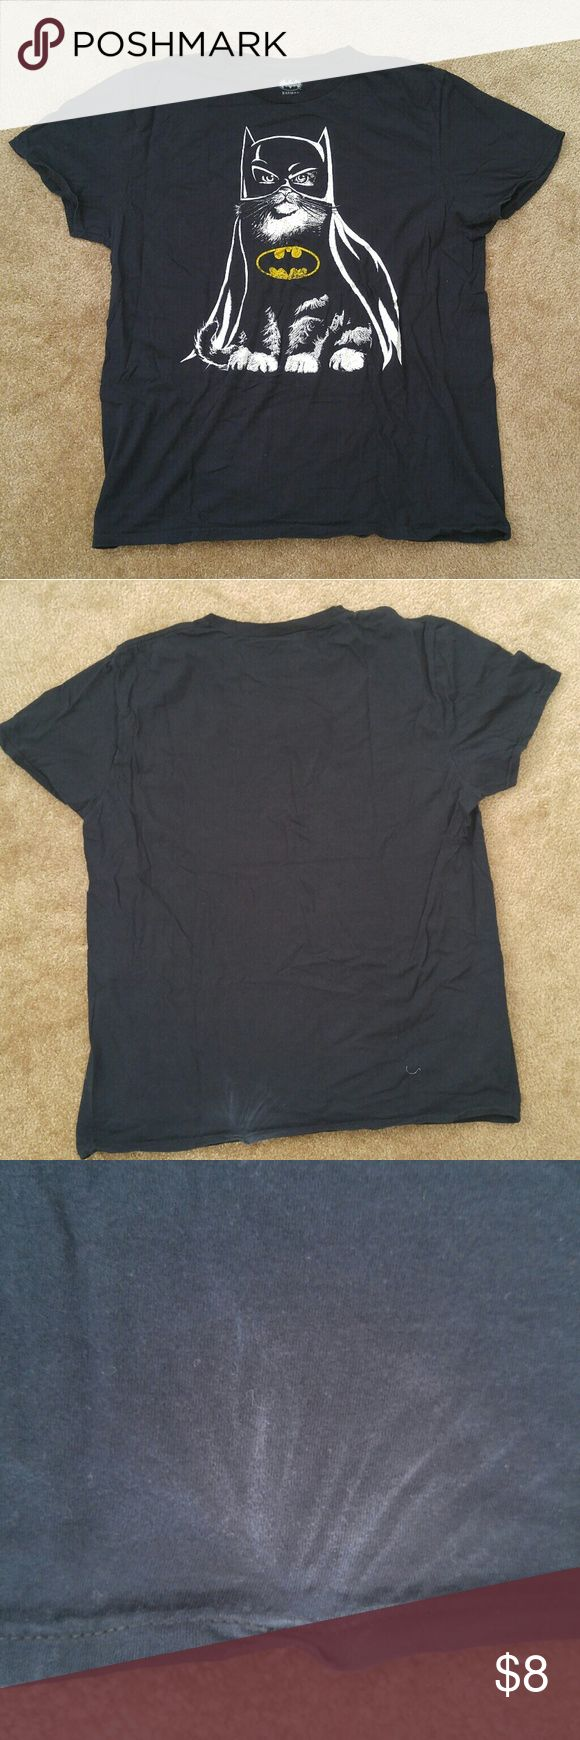 Batman Car T-Shirt Bat Cat shirt.  Some damage on back (see photo). Possibly happened during the spin cycle of a high efficiency washer.  Perfect for a lazy Halloween costume.  Smoke/pet free home. Batman Tops Tees - Long Sleeve